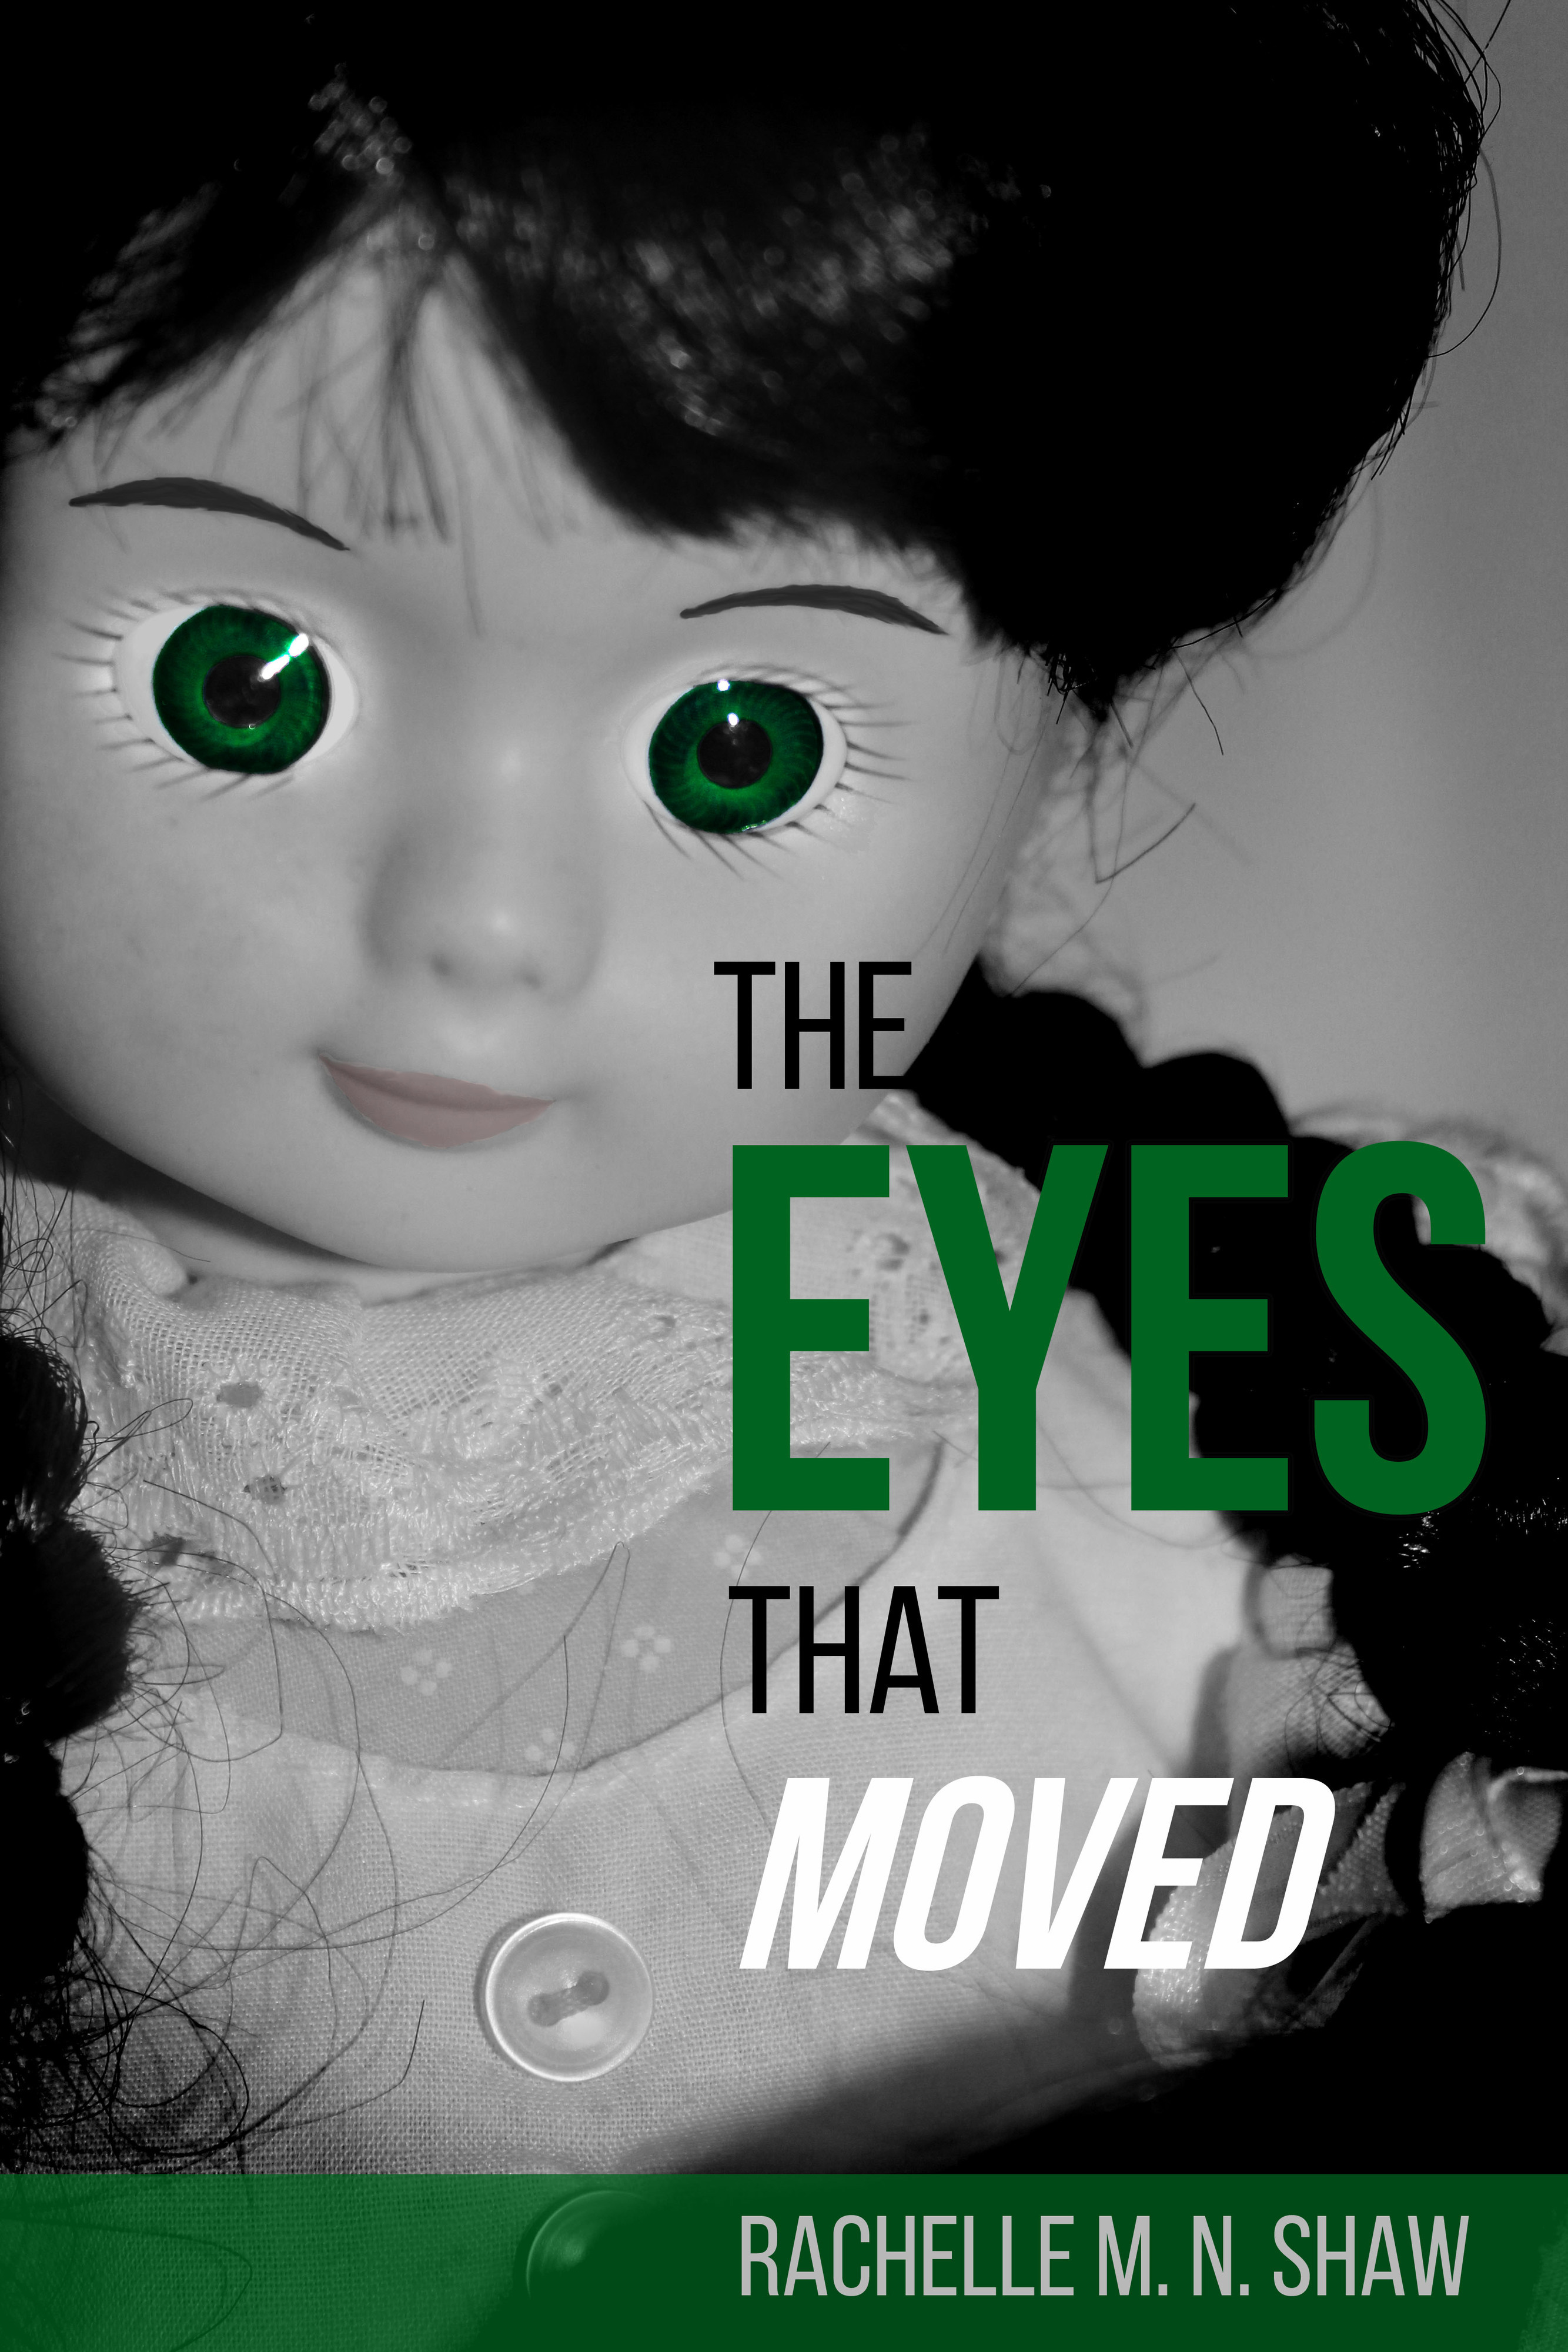 The Eyes That Moved Rachelle M.N. Shaw